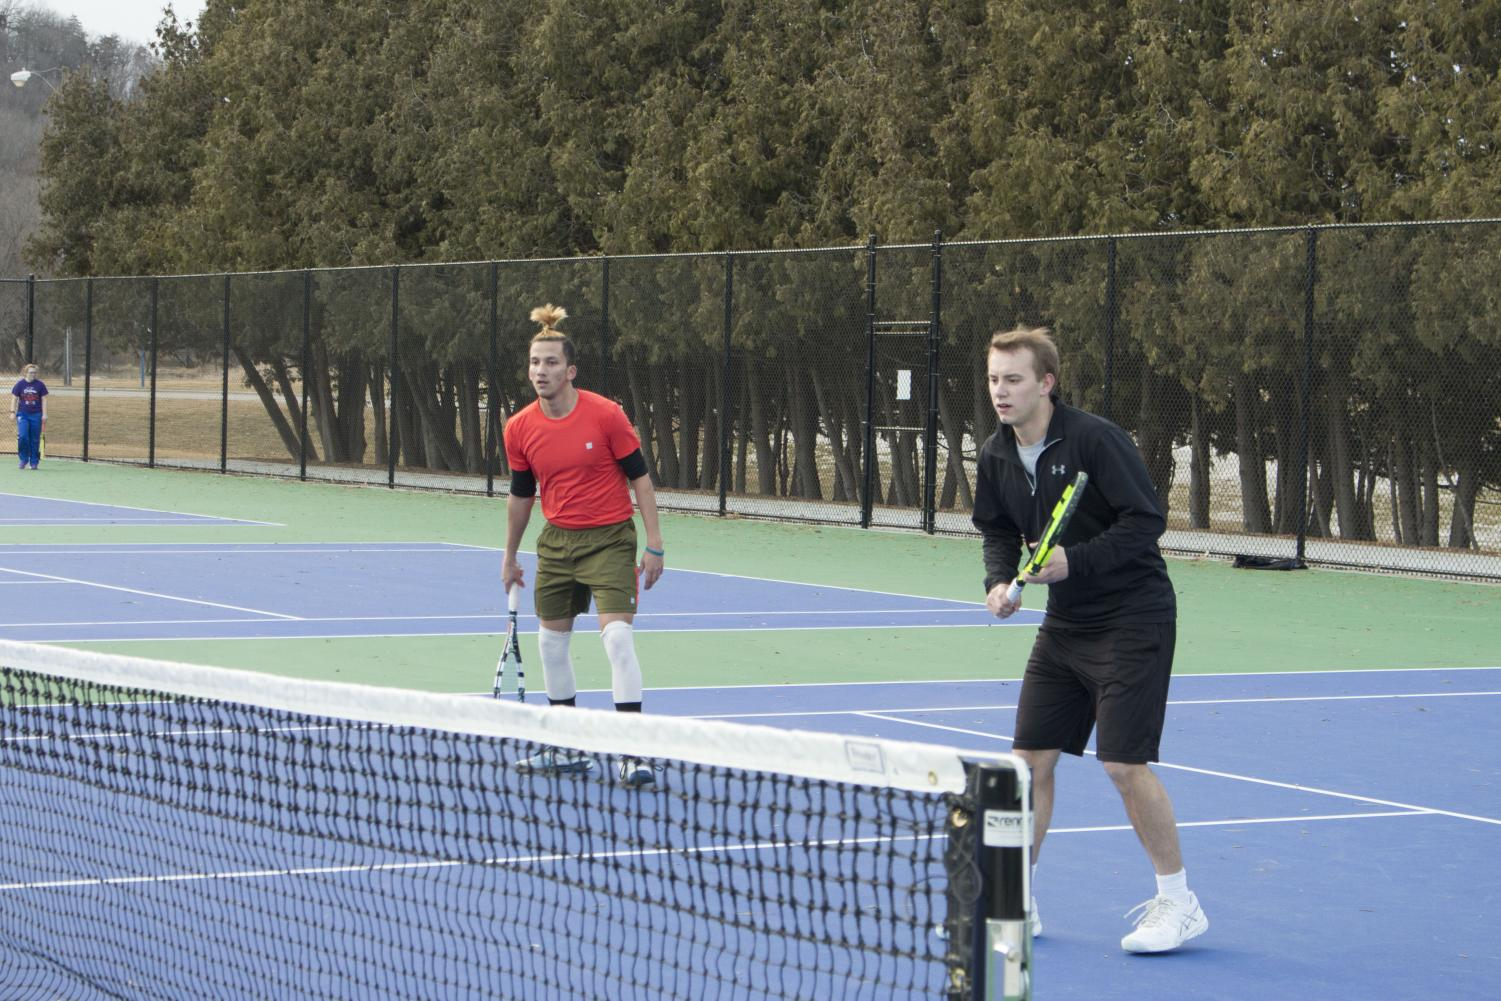 Sakchham Karki ('21) and Brian Murman ('19) practice doubles on the tennis courts.